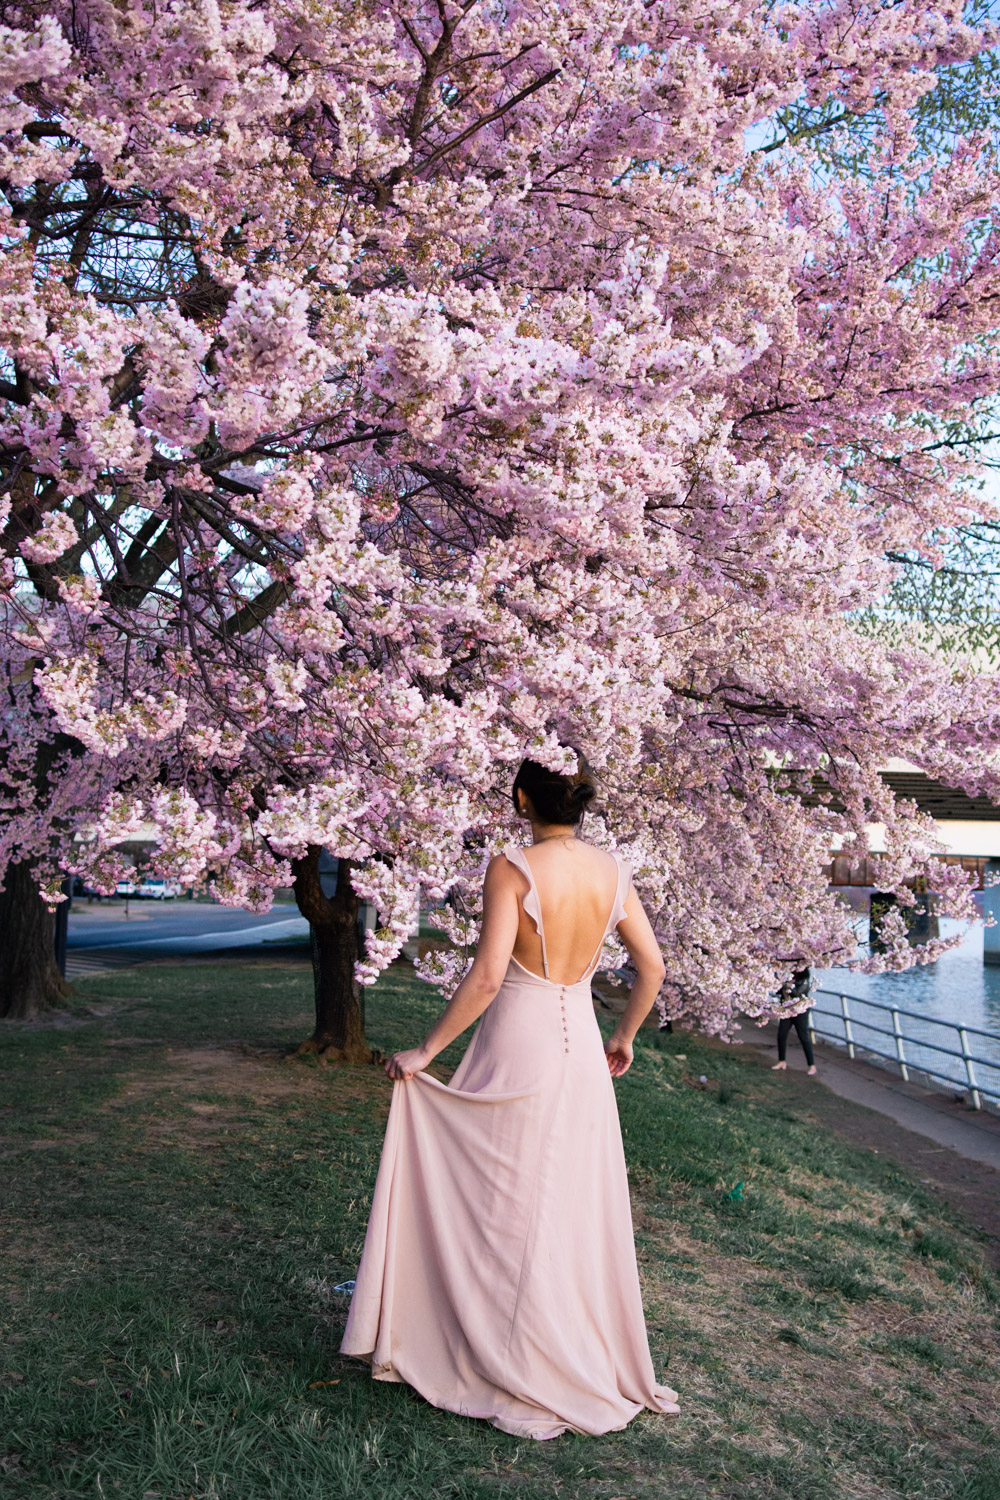 best places to take pictures of cherry blossoms in dc